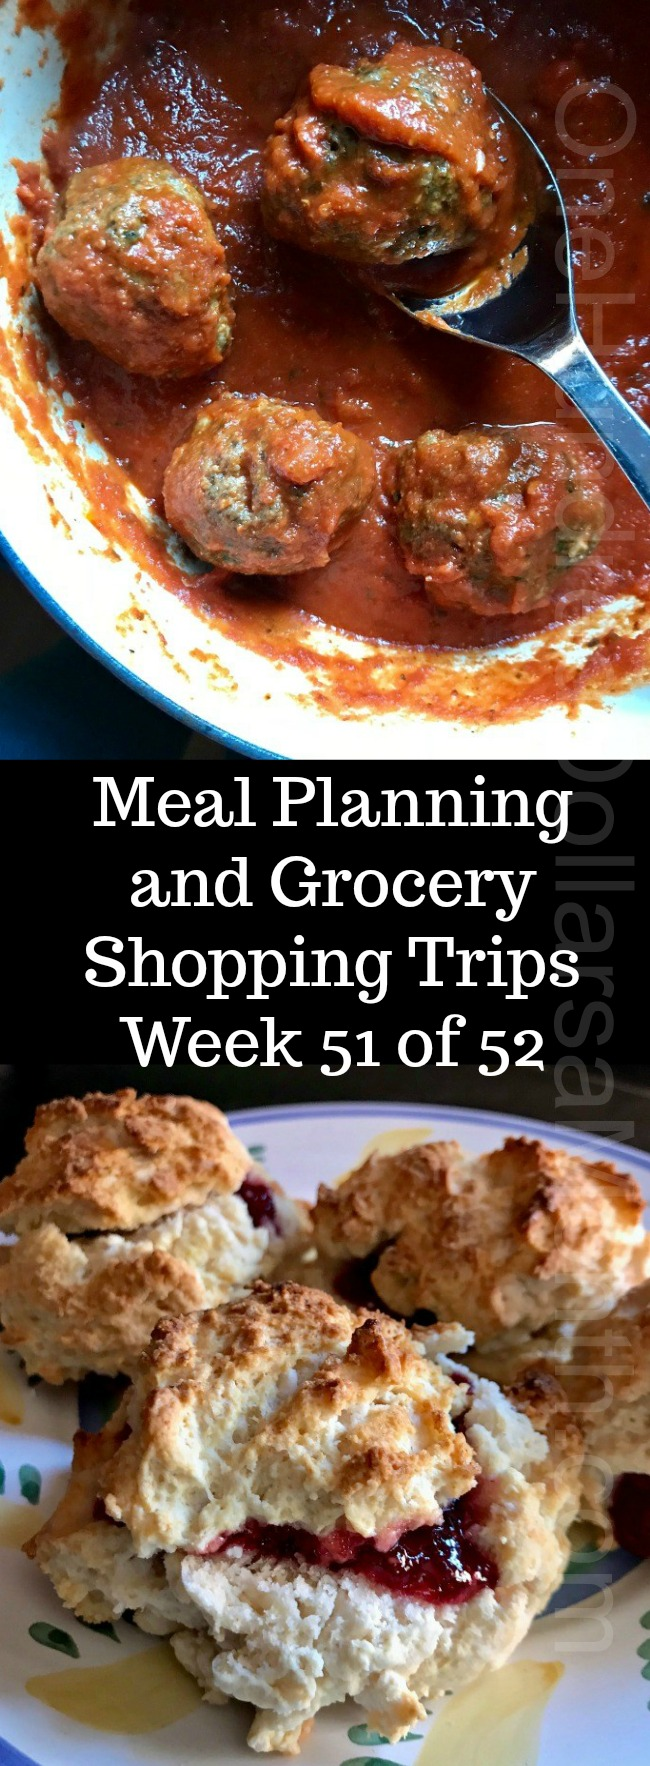 Meal Planning and Grocery Shopping Trips – Week 51 of 52